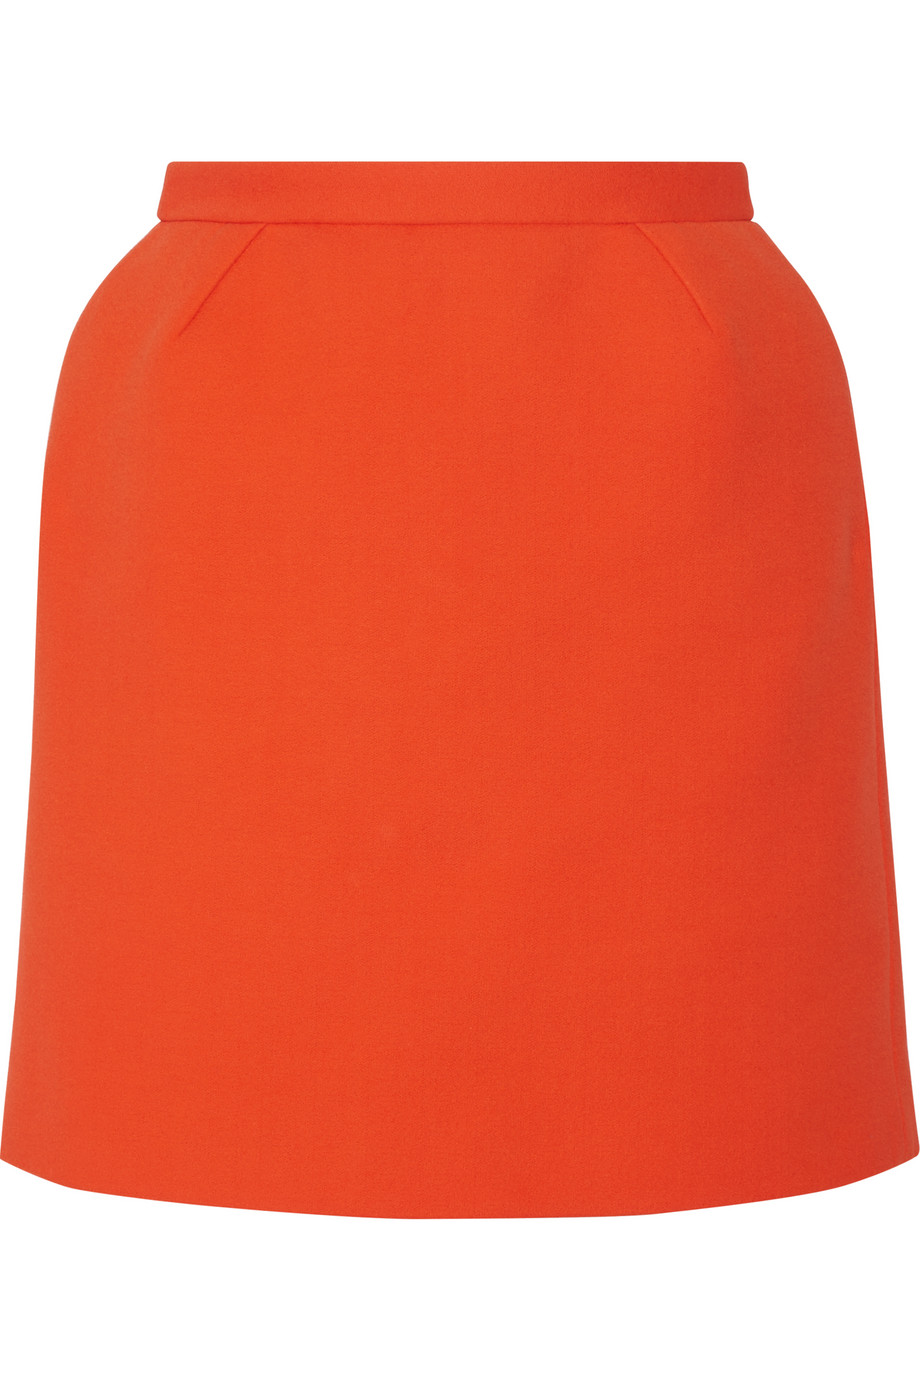 Delpozo Cotton-Blend Crepe Mini Skirt, Bright Orange, Women's, Size: 38